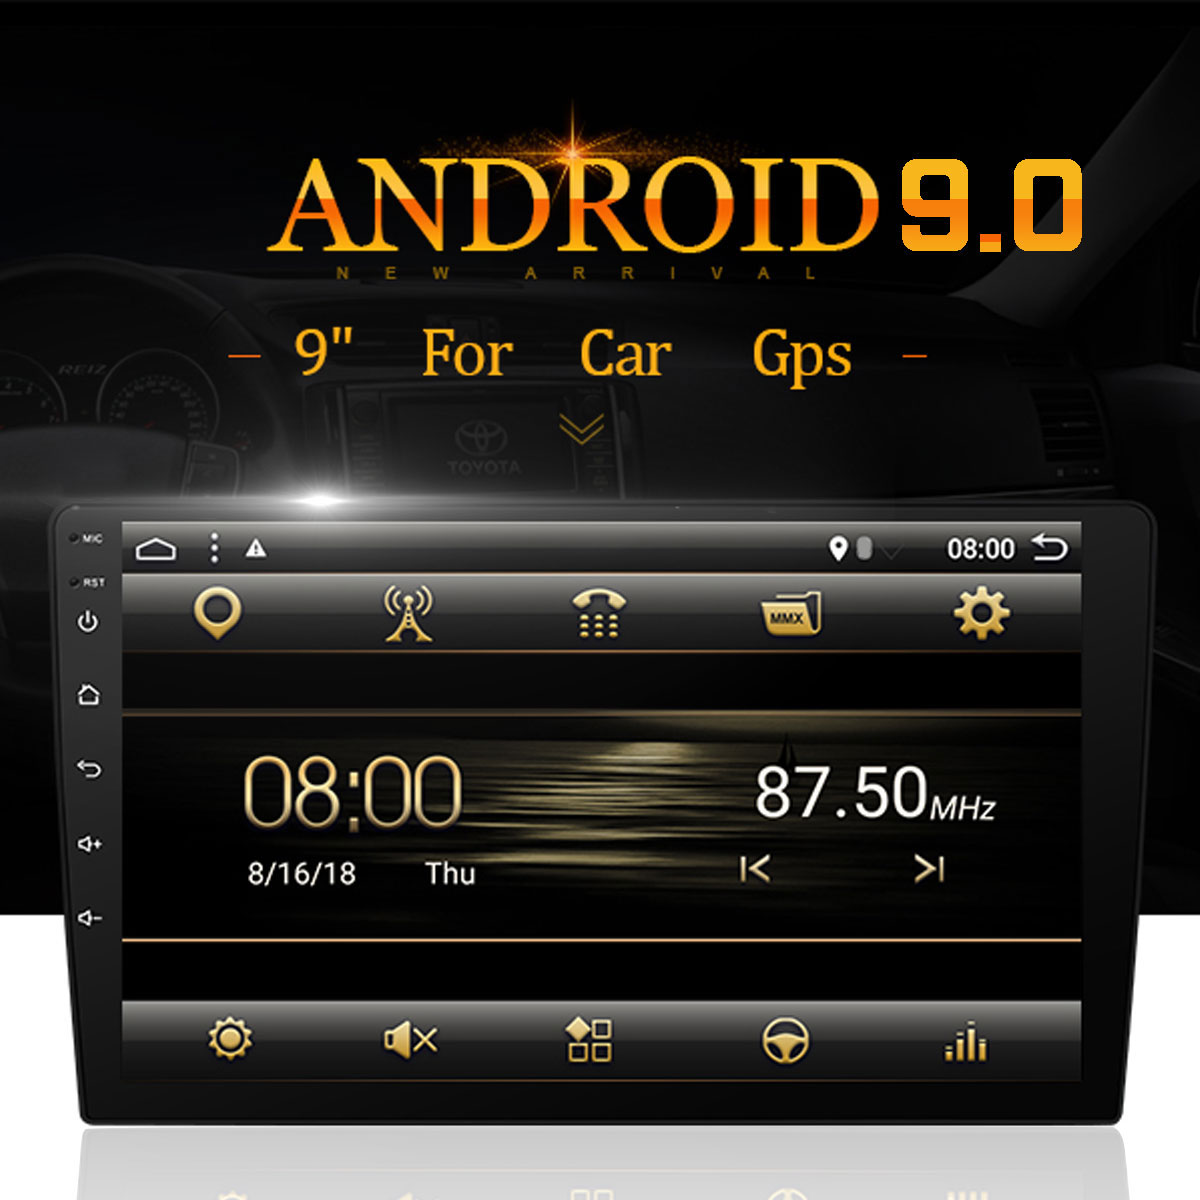 10.1 8core 4+32G Android 9.0 Car MP5 Player Car Radio 2DIN PX6 bluetooth GPS Universal Car Multimedia Player with Backup Camera10.1 8core 4+32G Android 9.0 Car MP5 Player Car Radio 2DIN PX6 bluetooth GPS Universal Car Multimedia Player with Backup Camera